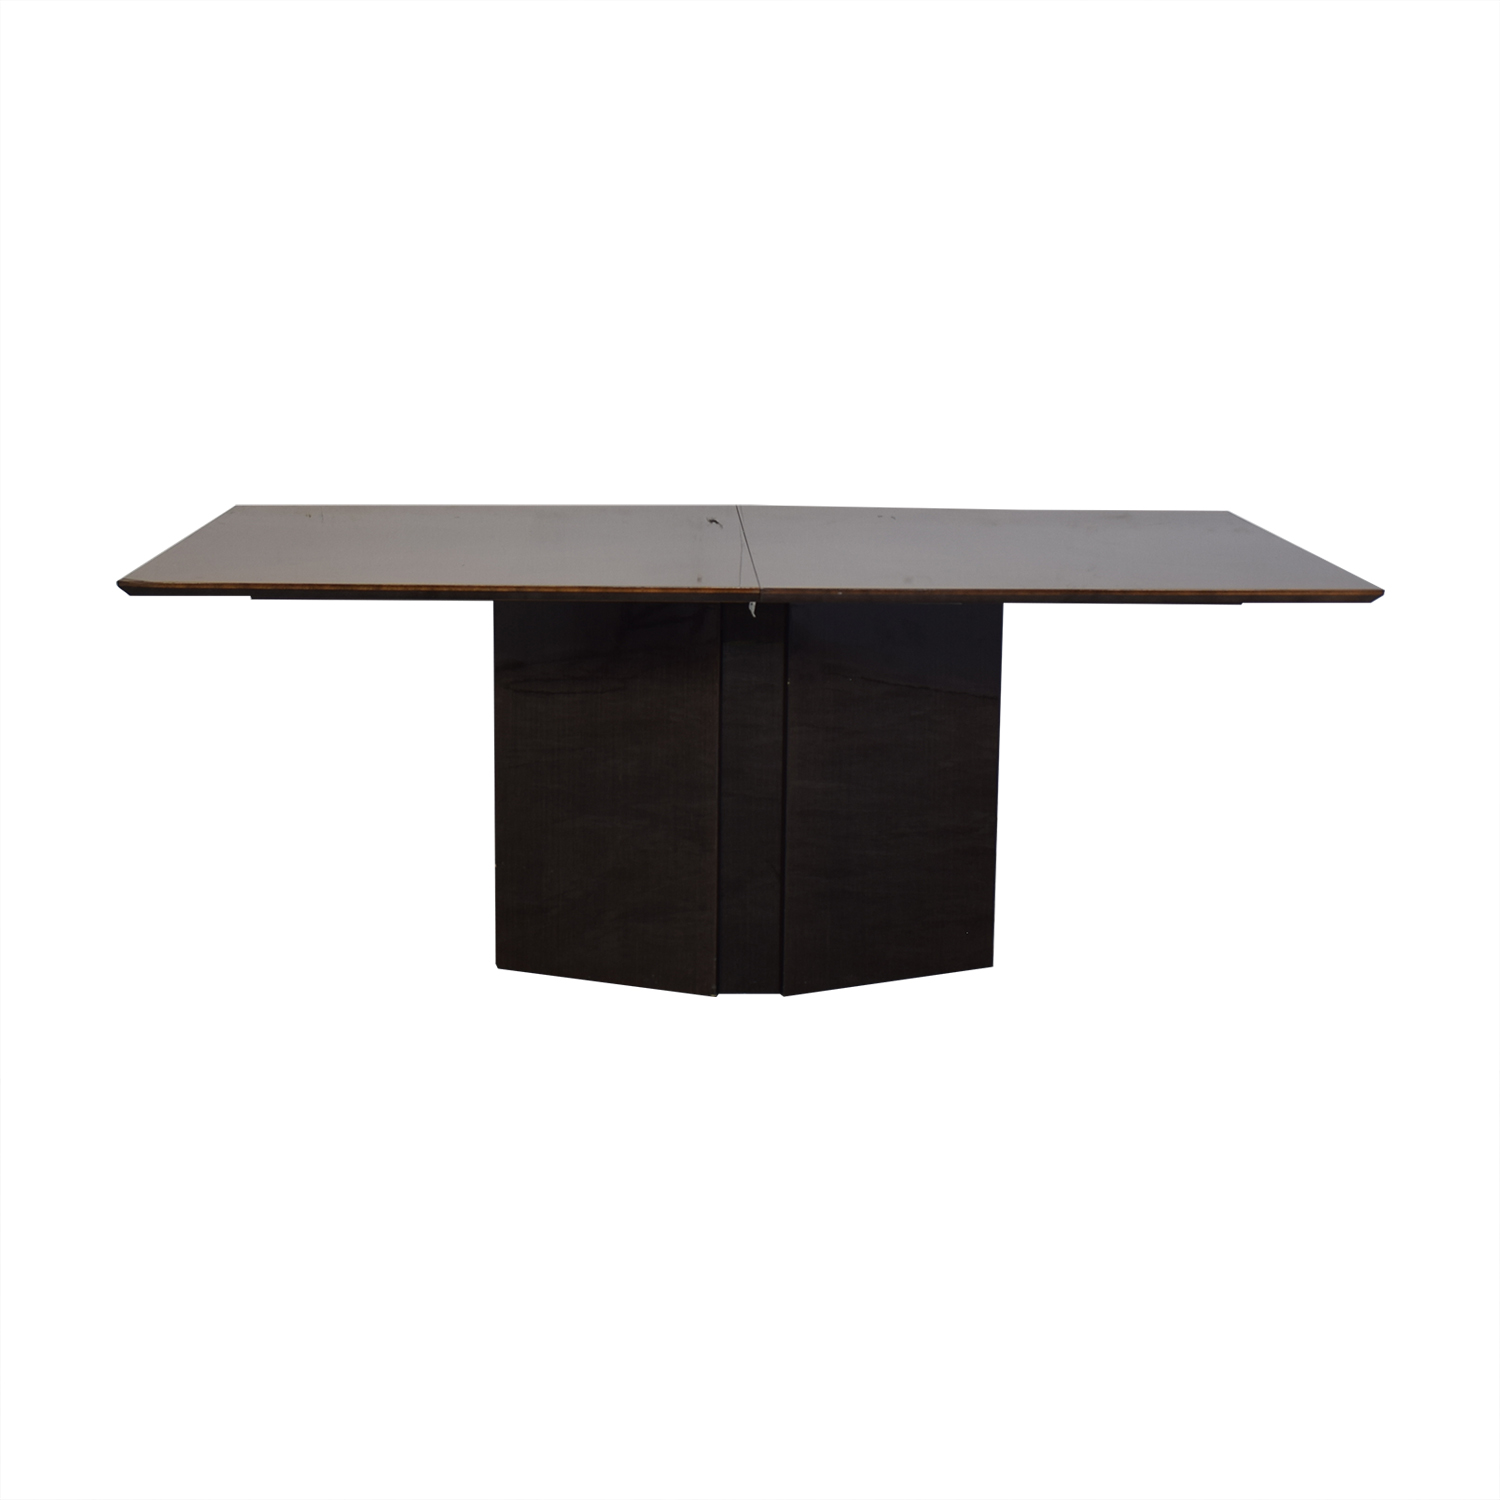 Elio Elio Dining Table with Center Leaf second hand